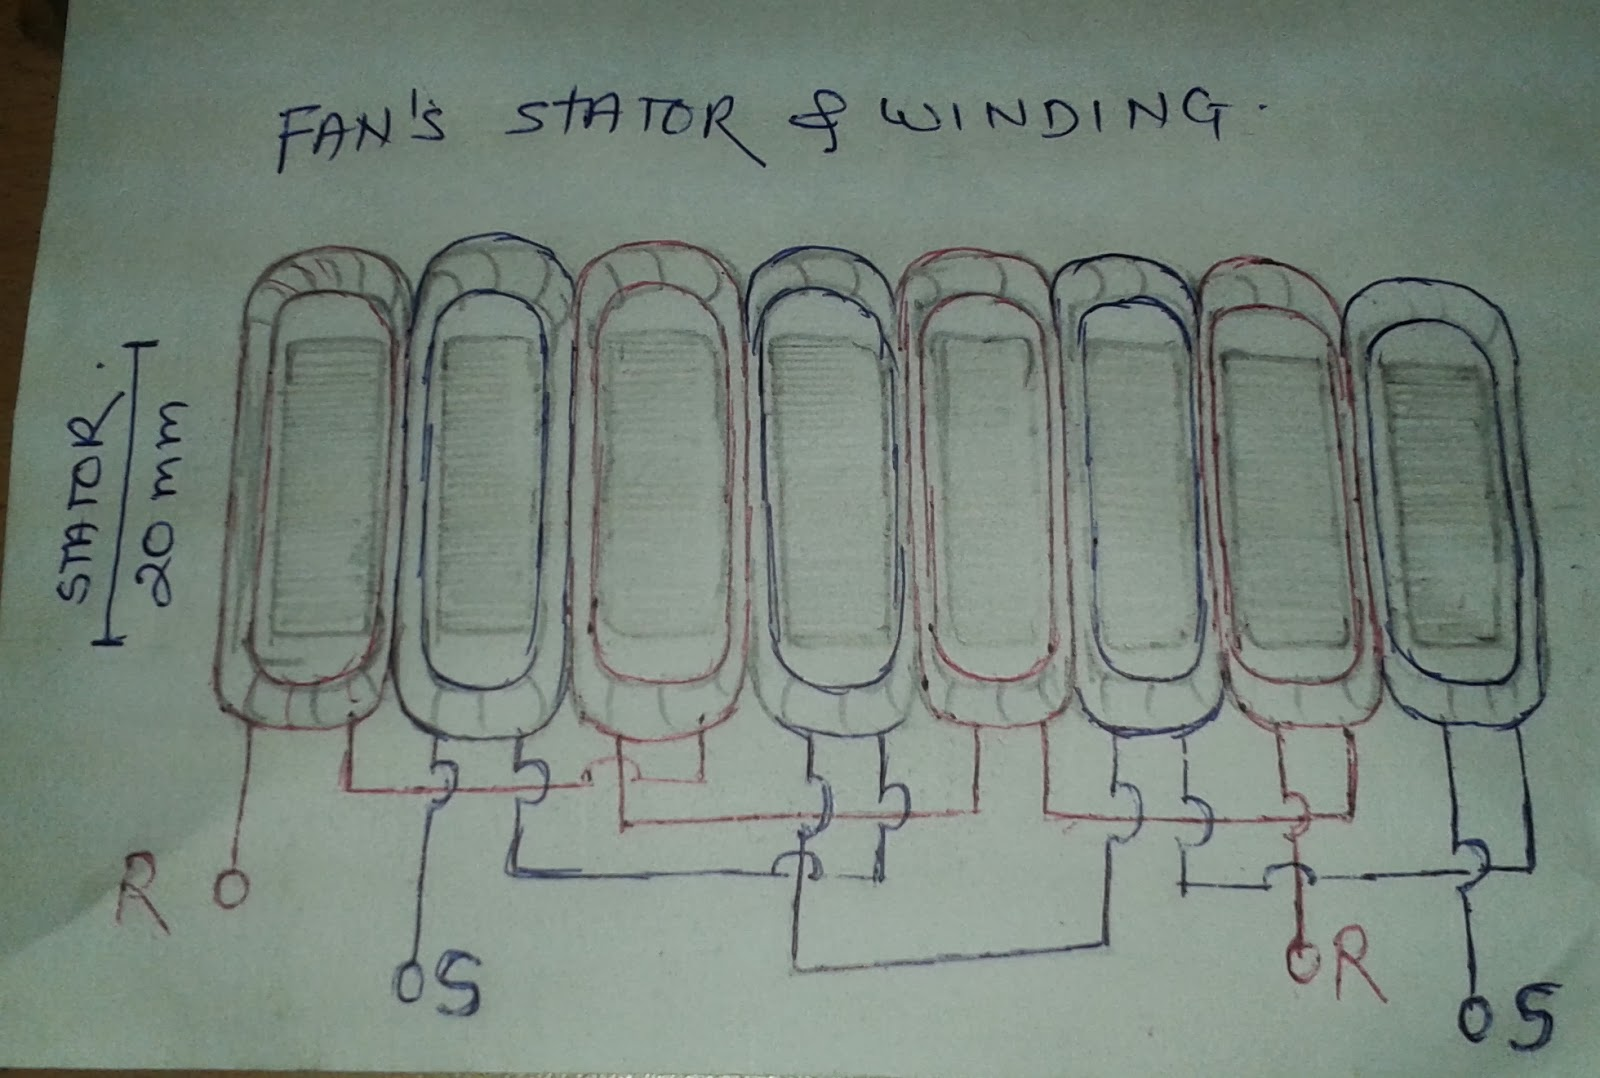 A fan coil wiring free download wiring diagram electric electronics project almonard wall fan winding data almonard wall fan winding data ford 302 distributor wiring diagram fan relay wiring pooptronica Gallery